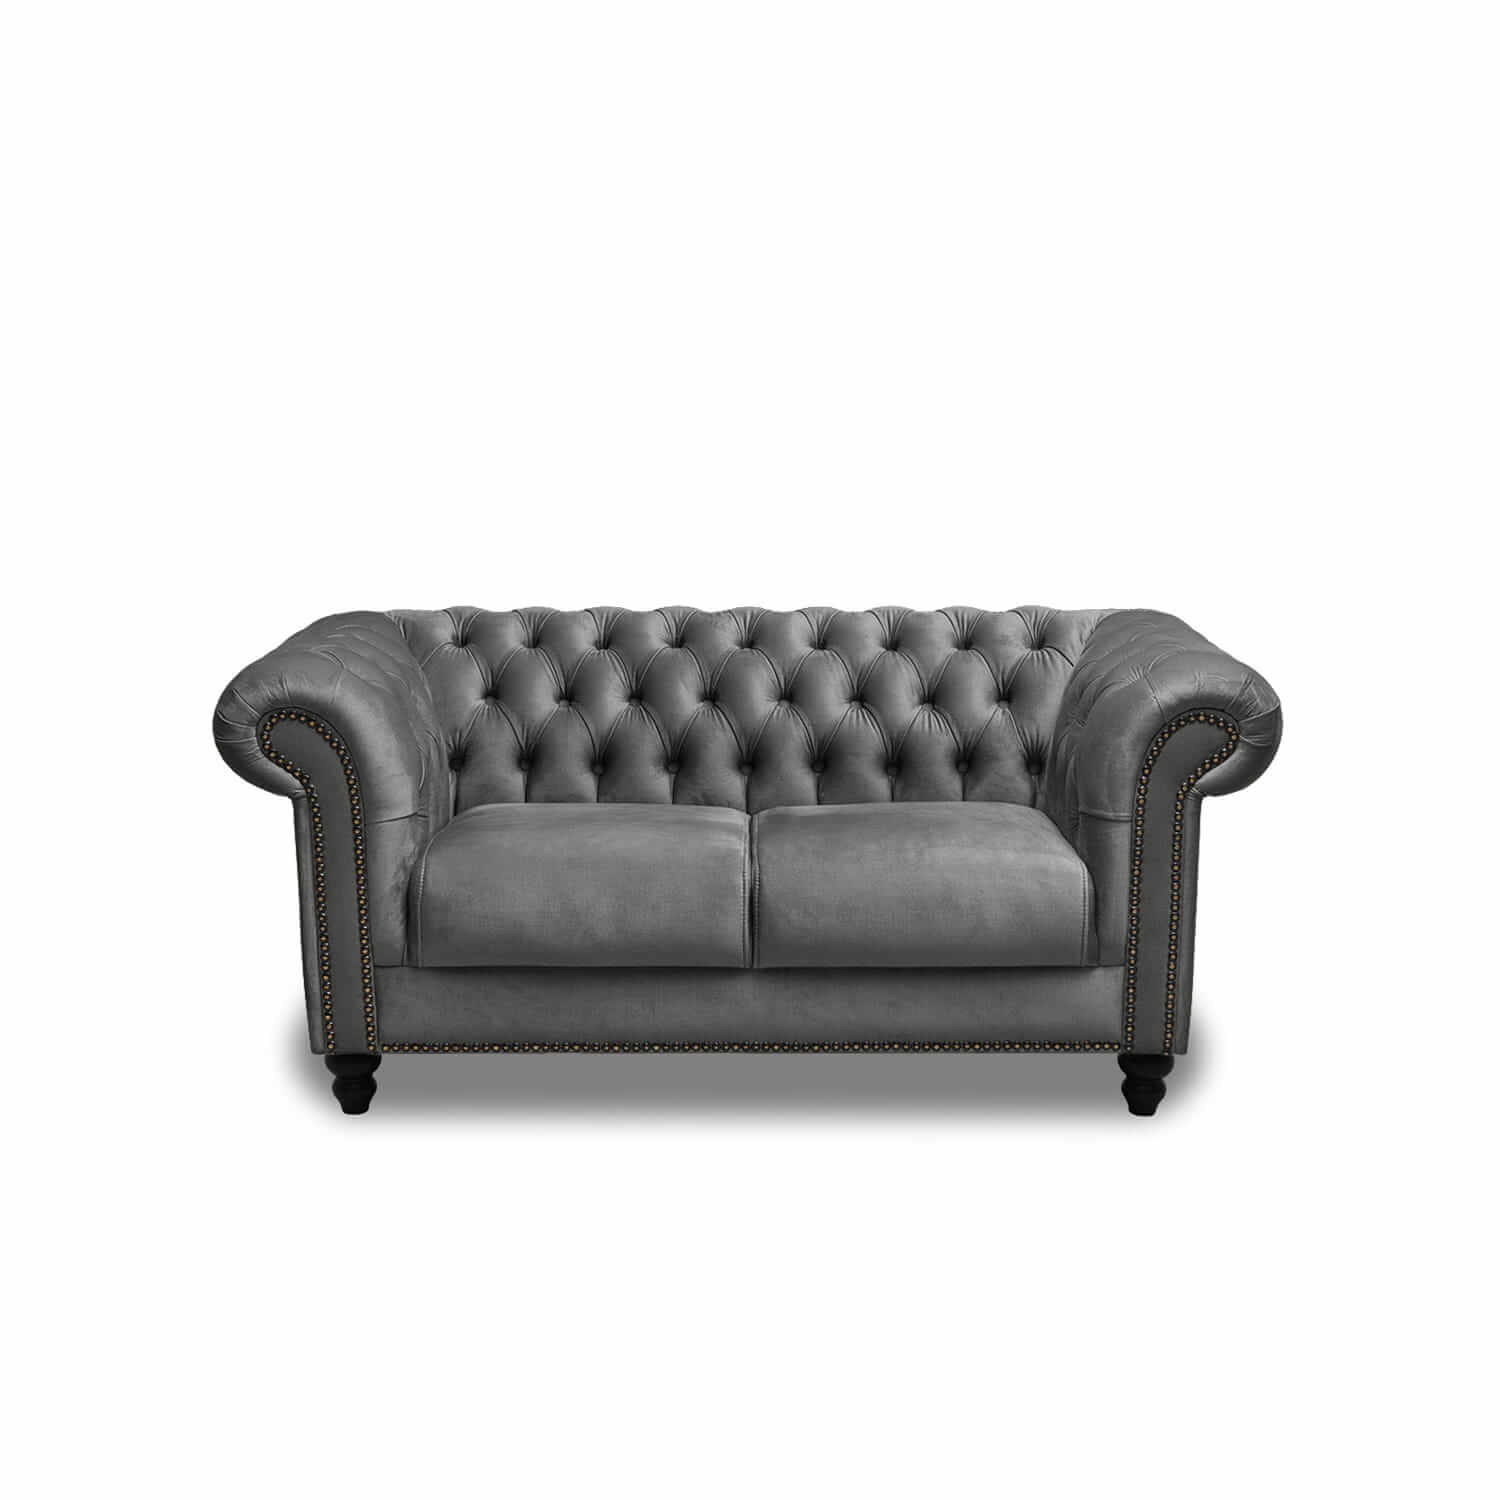 https://www.excluzive.se/wp-content/uploads/2020/10/Chesterfield-2-sits-Gra.jpg